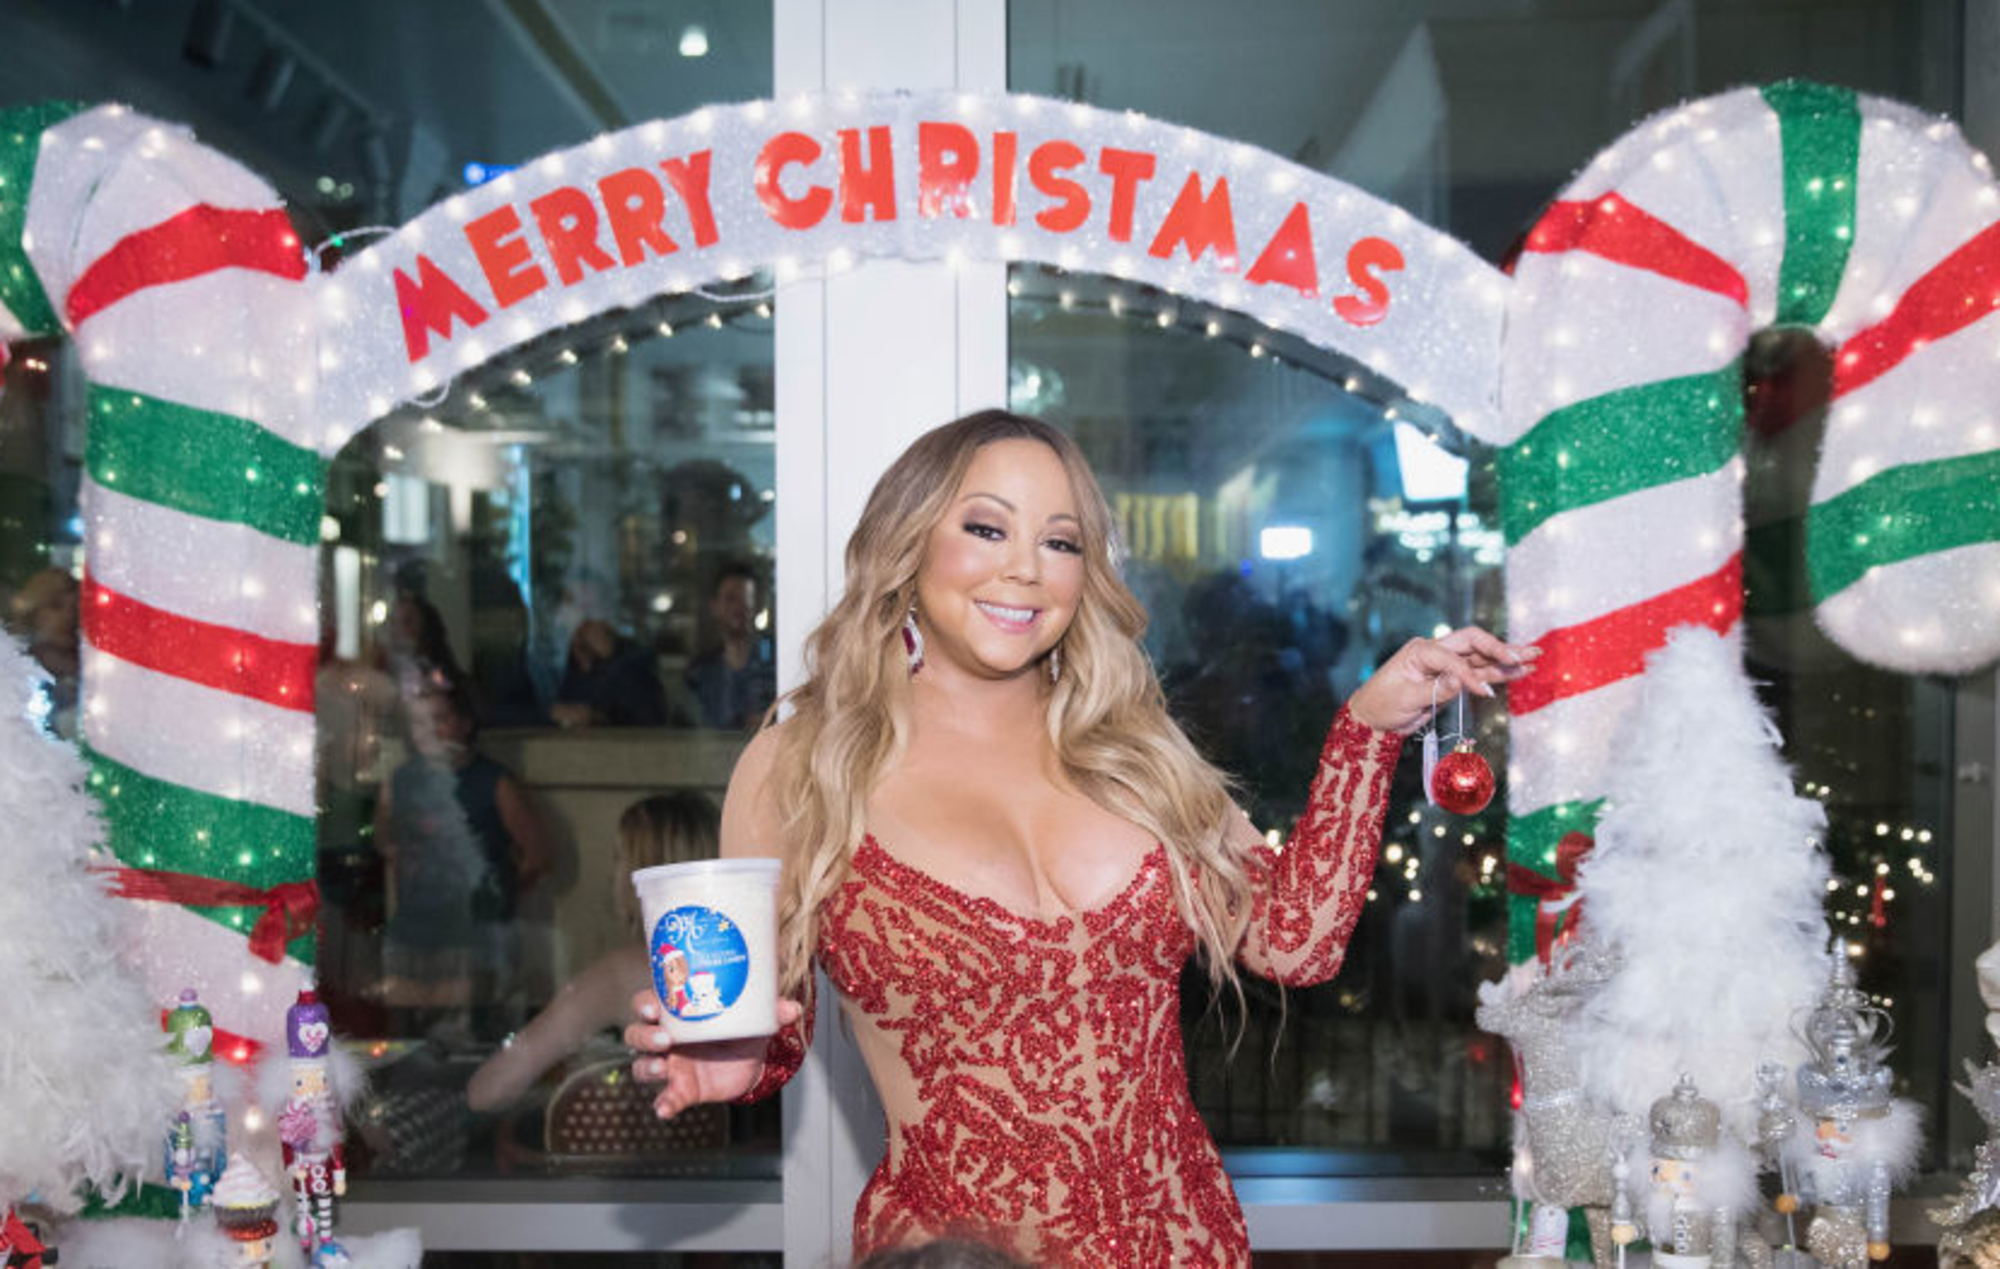 Mariah Carey's 'All I Want For Christmas Is You' could land its first ever UK Number One this week